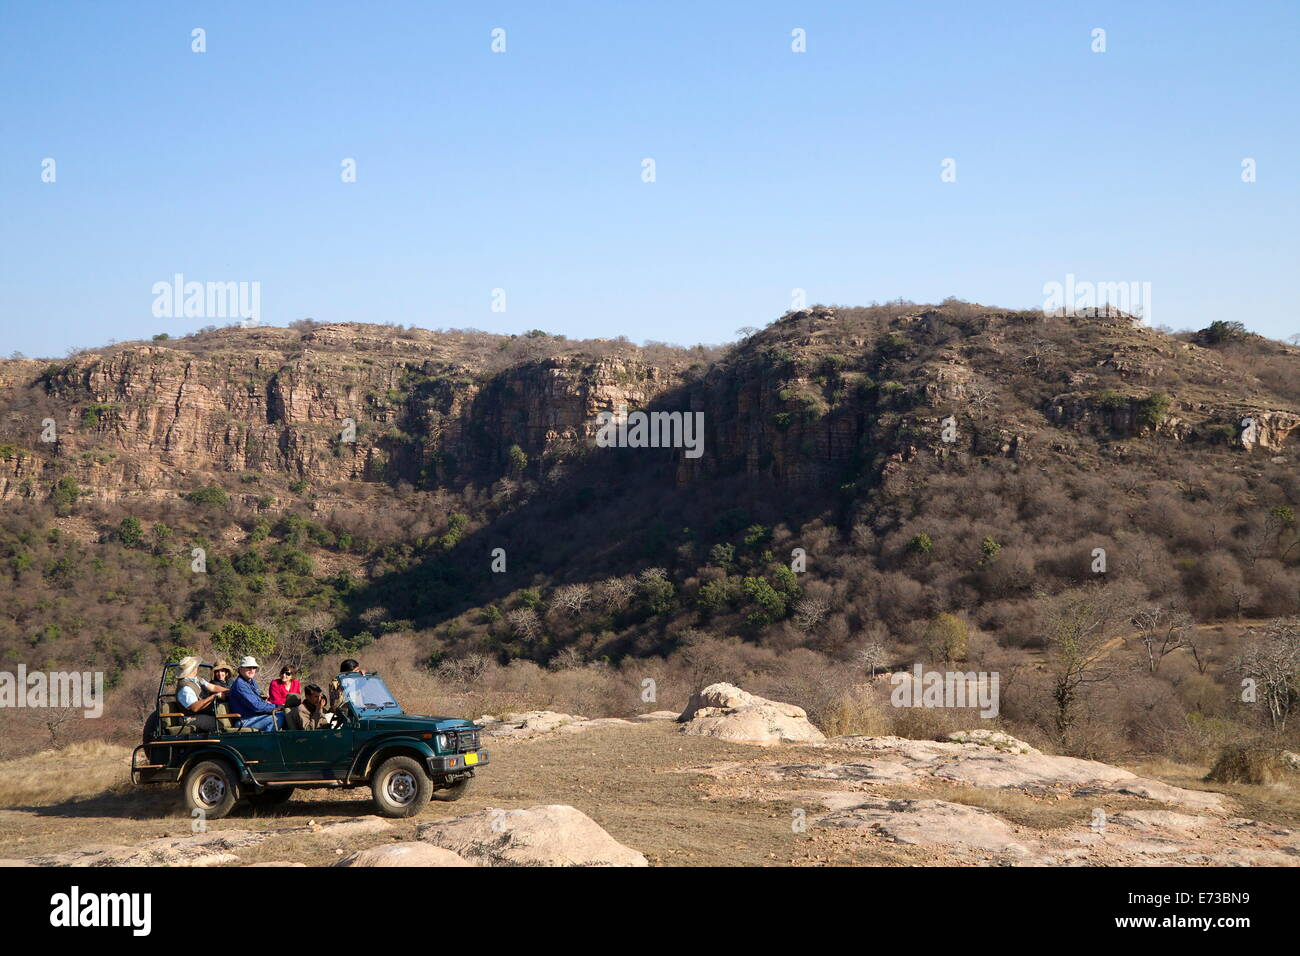 Tourists on safari in open jeep, Ranthambore National Park, Rajasthan, India, Asia - Stock Image